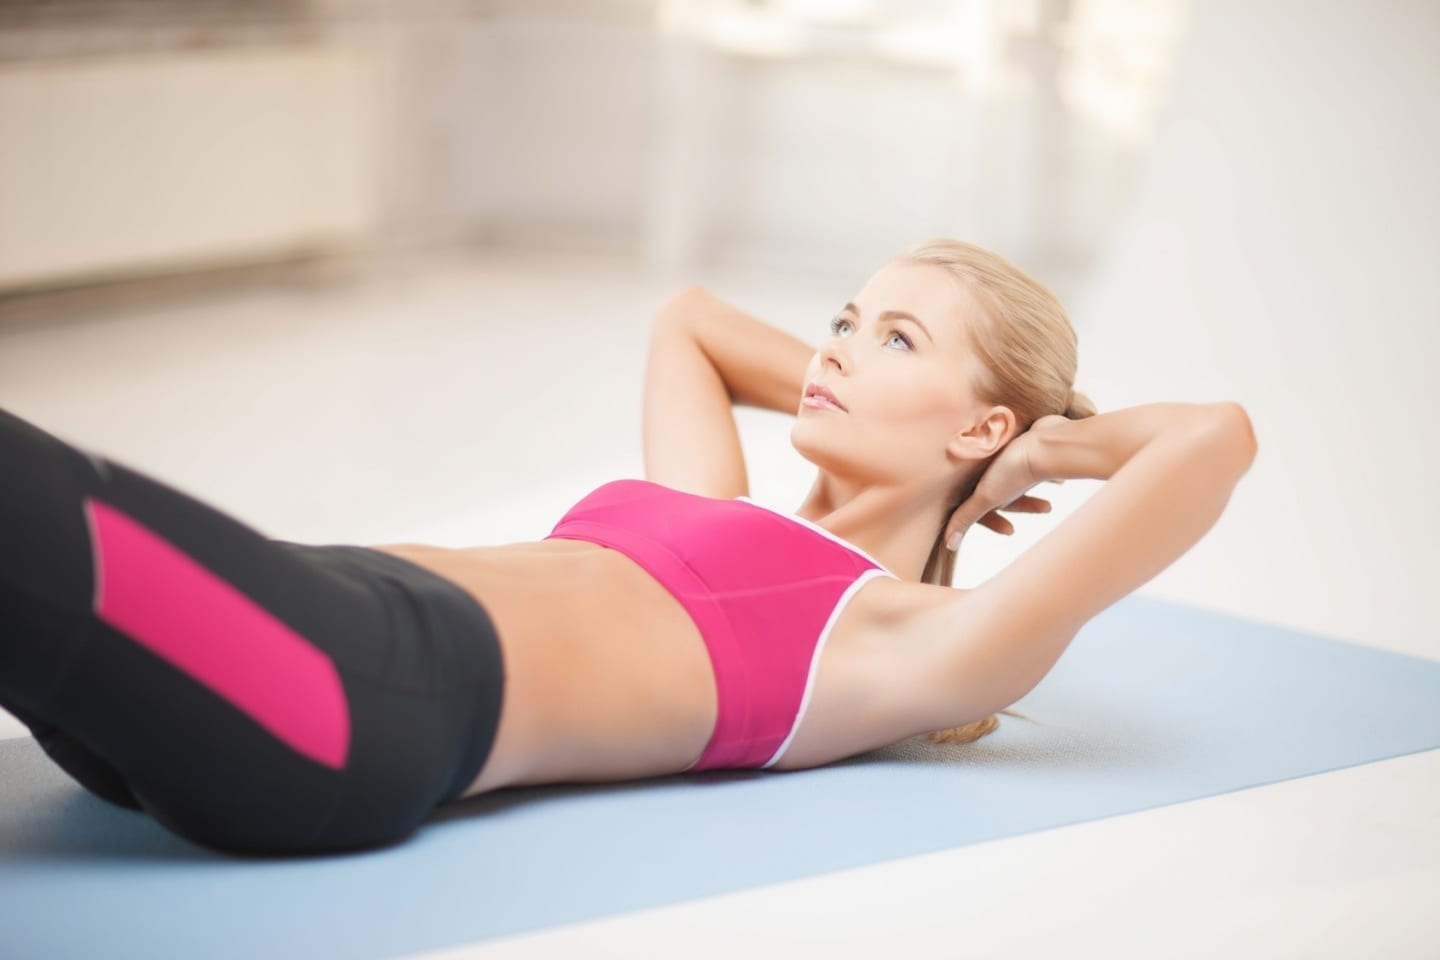 5 Great Solutions For A Flat Stomach at Any Age